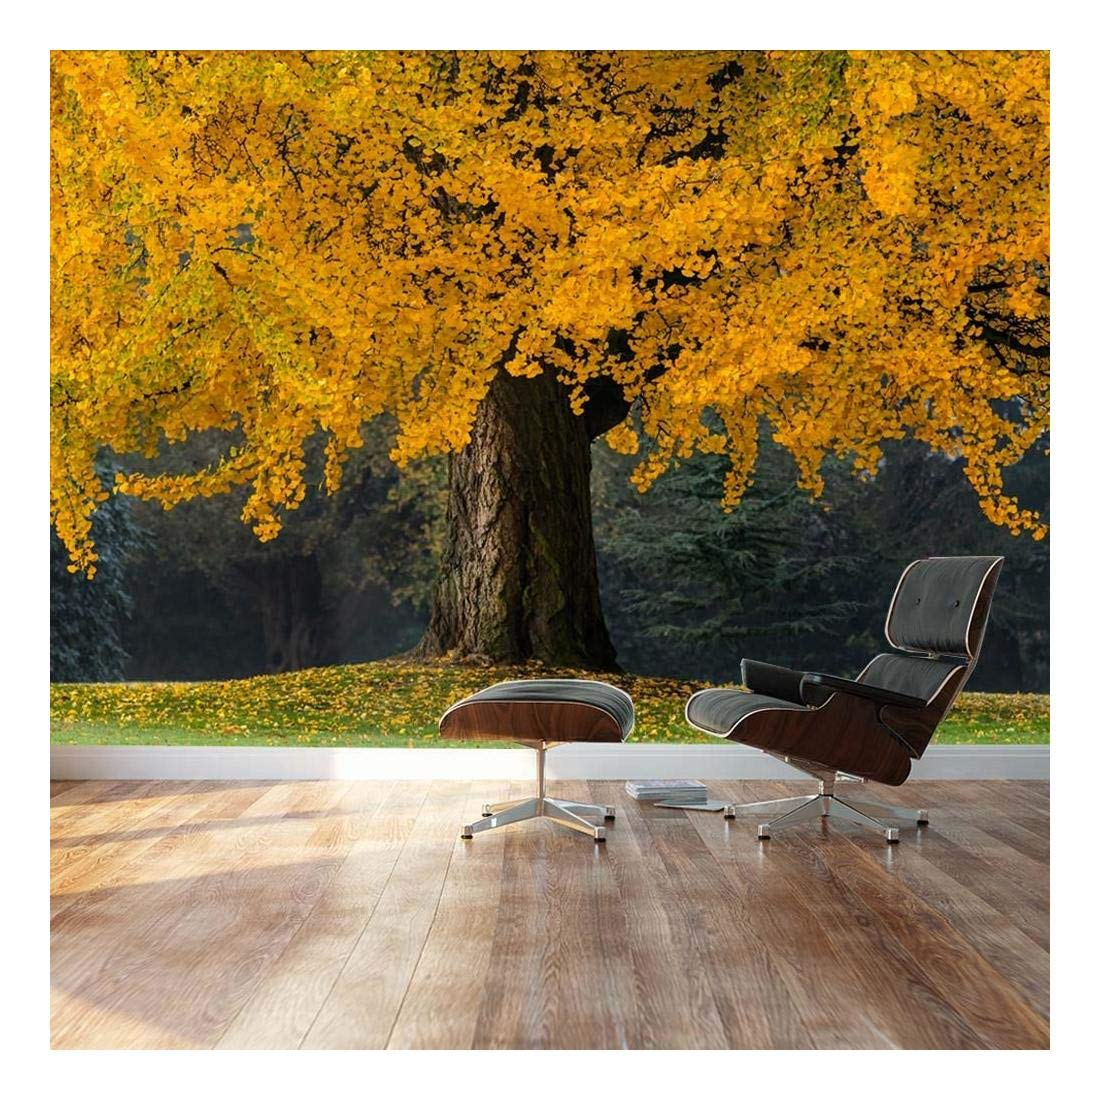 Magnificent Creative Design, Professional Creation, Beautiful Yellow Autumn Tree Landscape Wall Mural